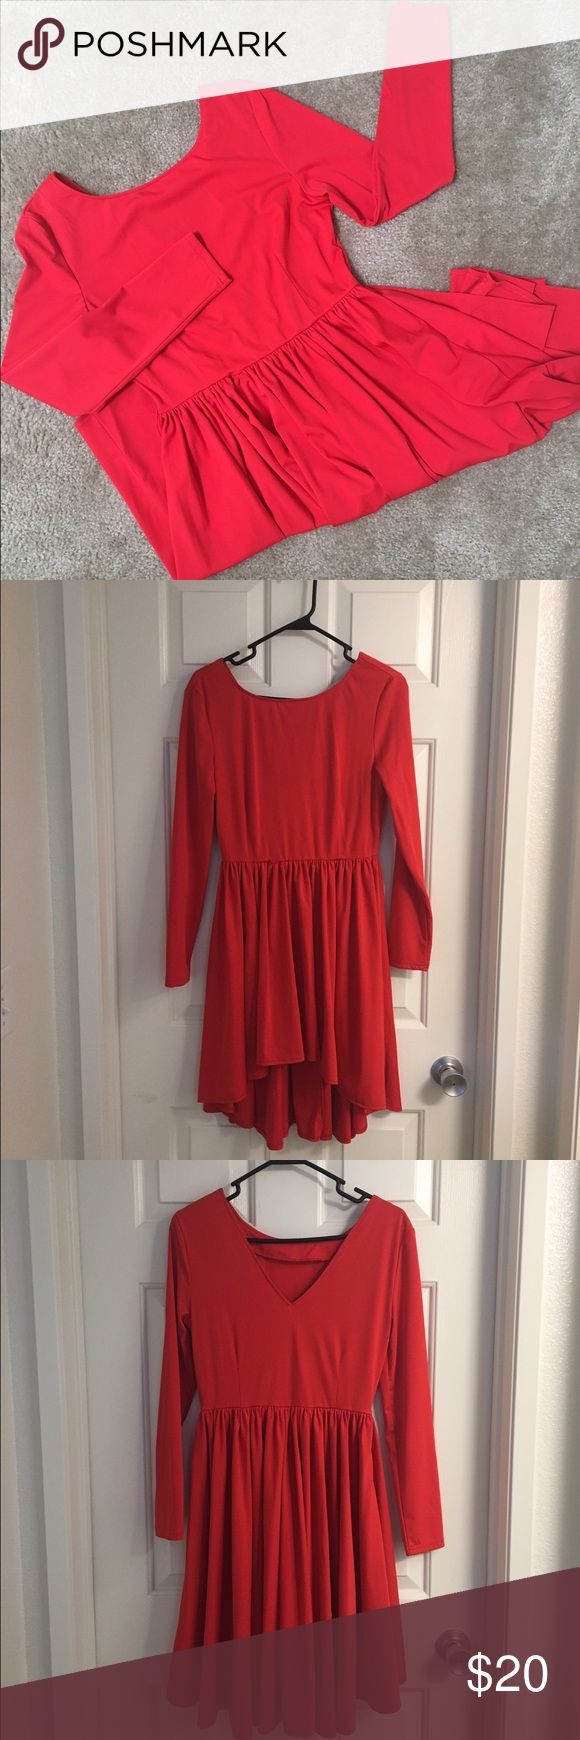 Red Ice Skater Style Dress Red Ice Skater High Low Style Dress. Tag size M. Dress has some stretch. V-neck back shown in picture. Worn once. Dresses High Low